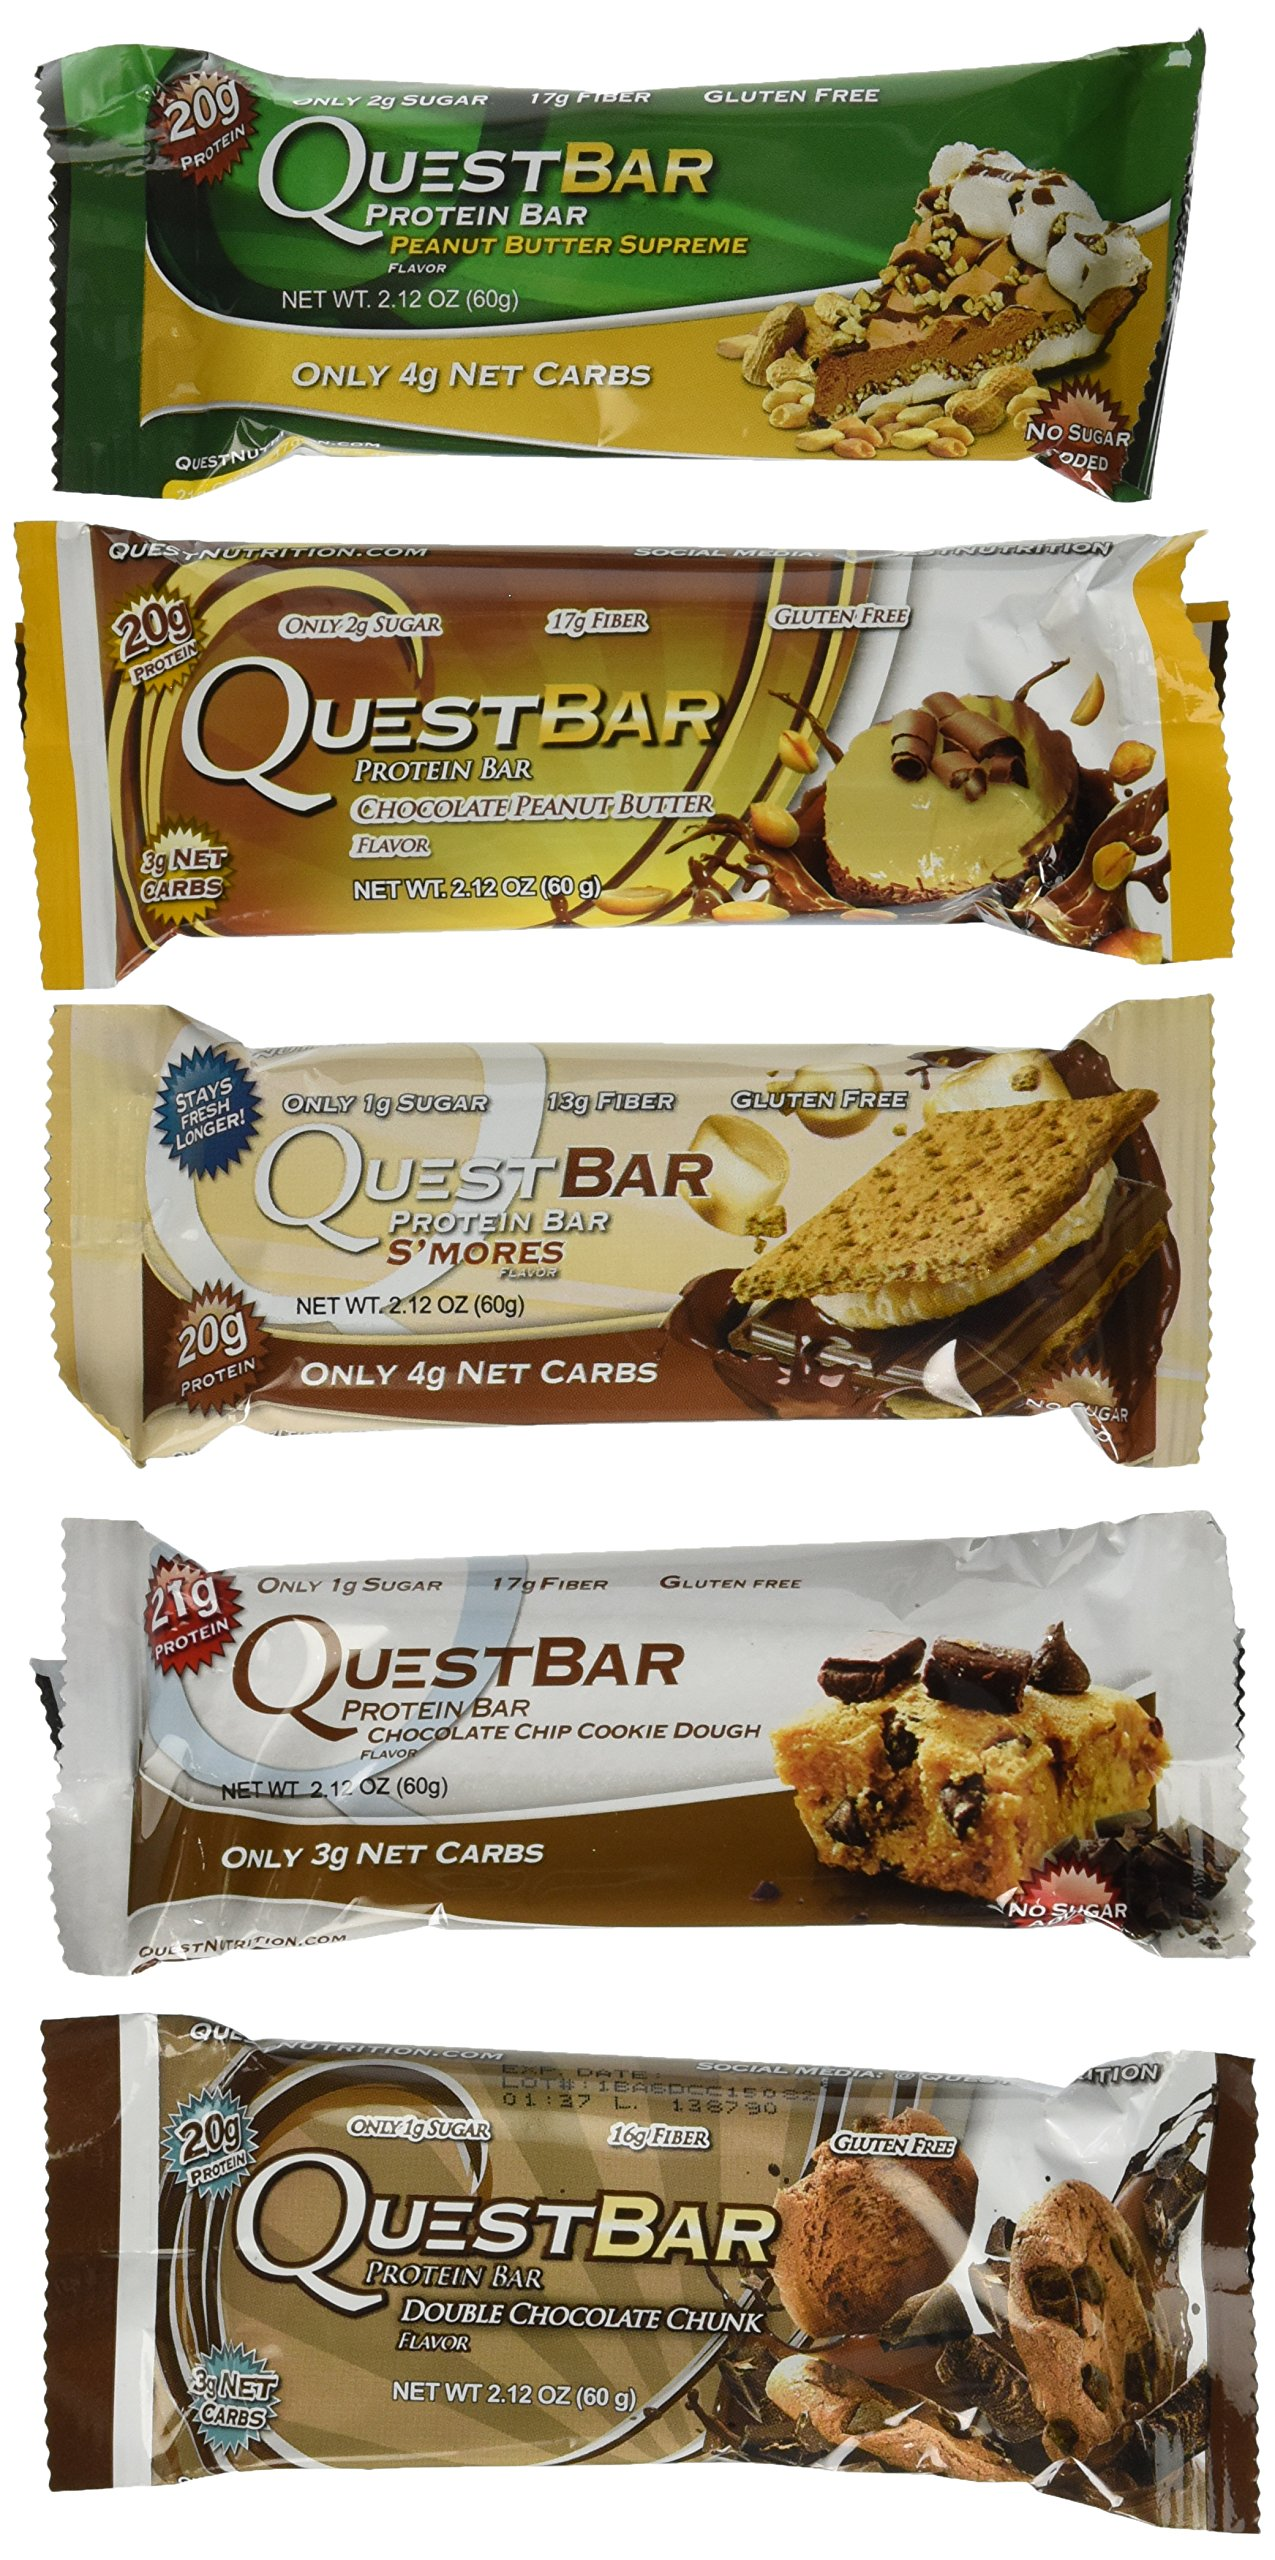 Quest Nutrition- Quest Bar Chocolate and Peanut Butter Lovers Bundle:4 S'Mores,2 Penaut Butter Supreme,2 Chocolate Chip Cookie Dough,2 Chocolate Peanut Butter, 2 Double Chocolate Chunk